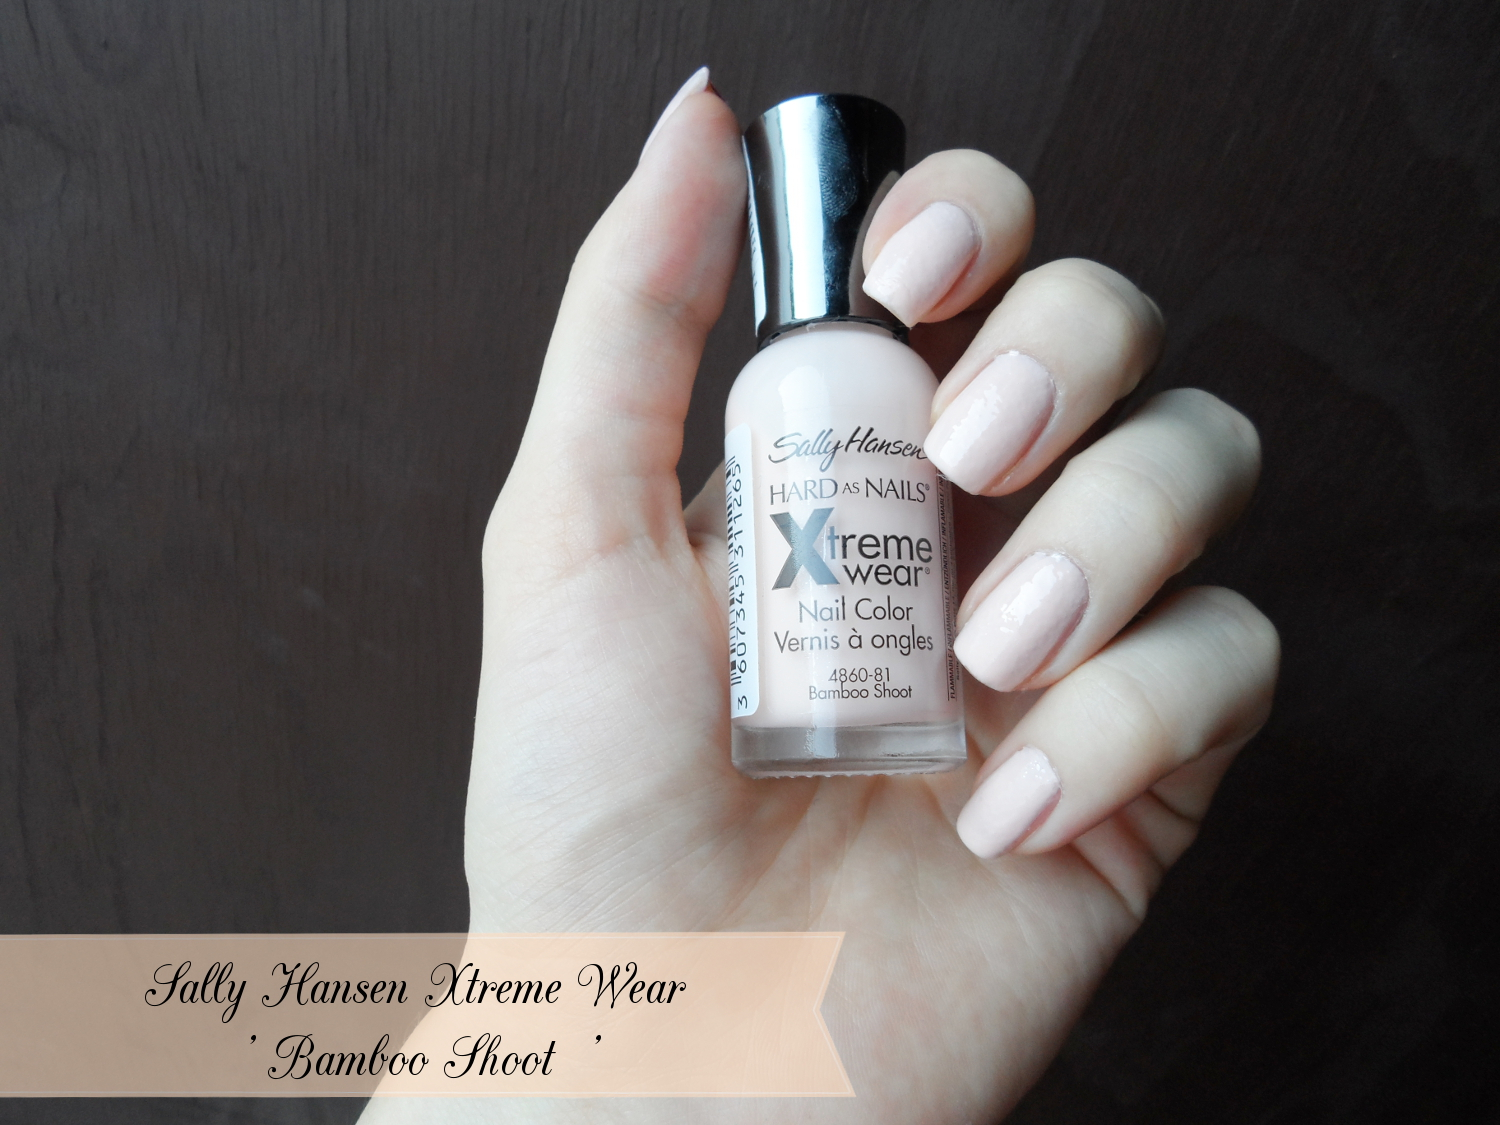 Sally Hansen Xtreme Wear In Bamboo Shoot Review Amp Swatches